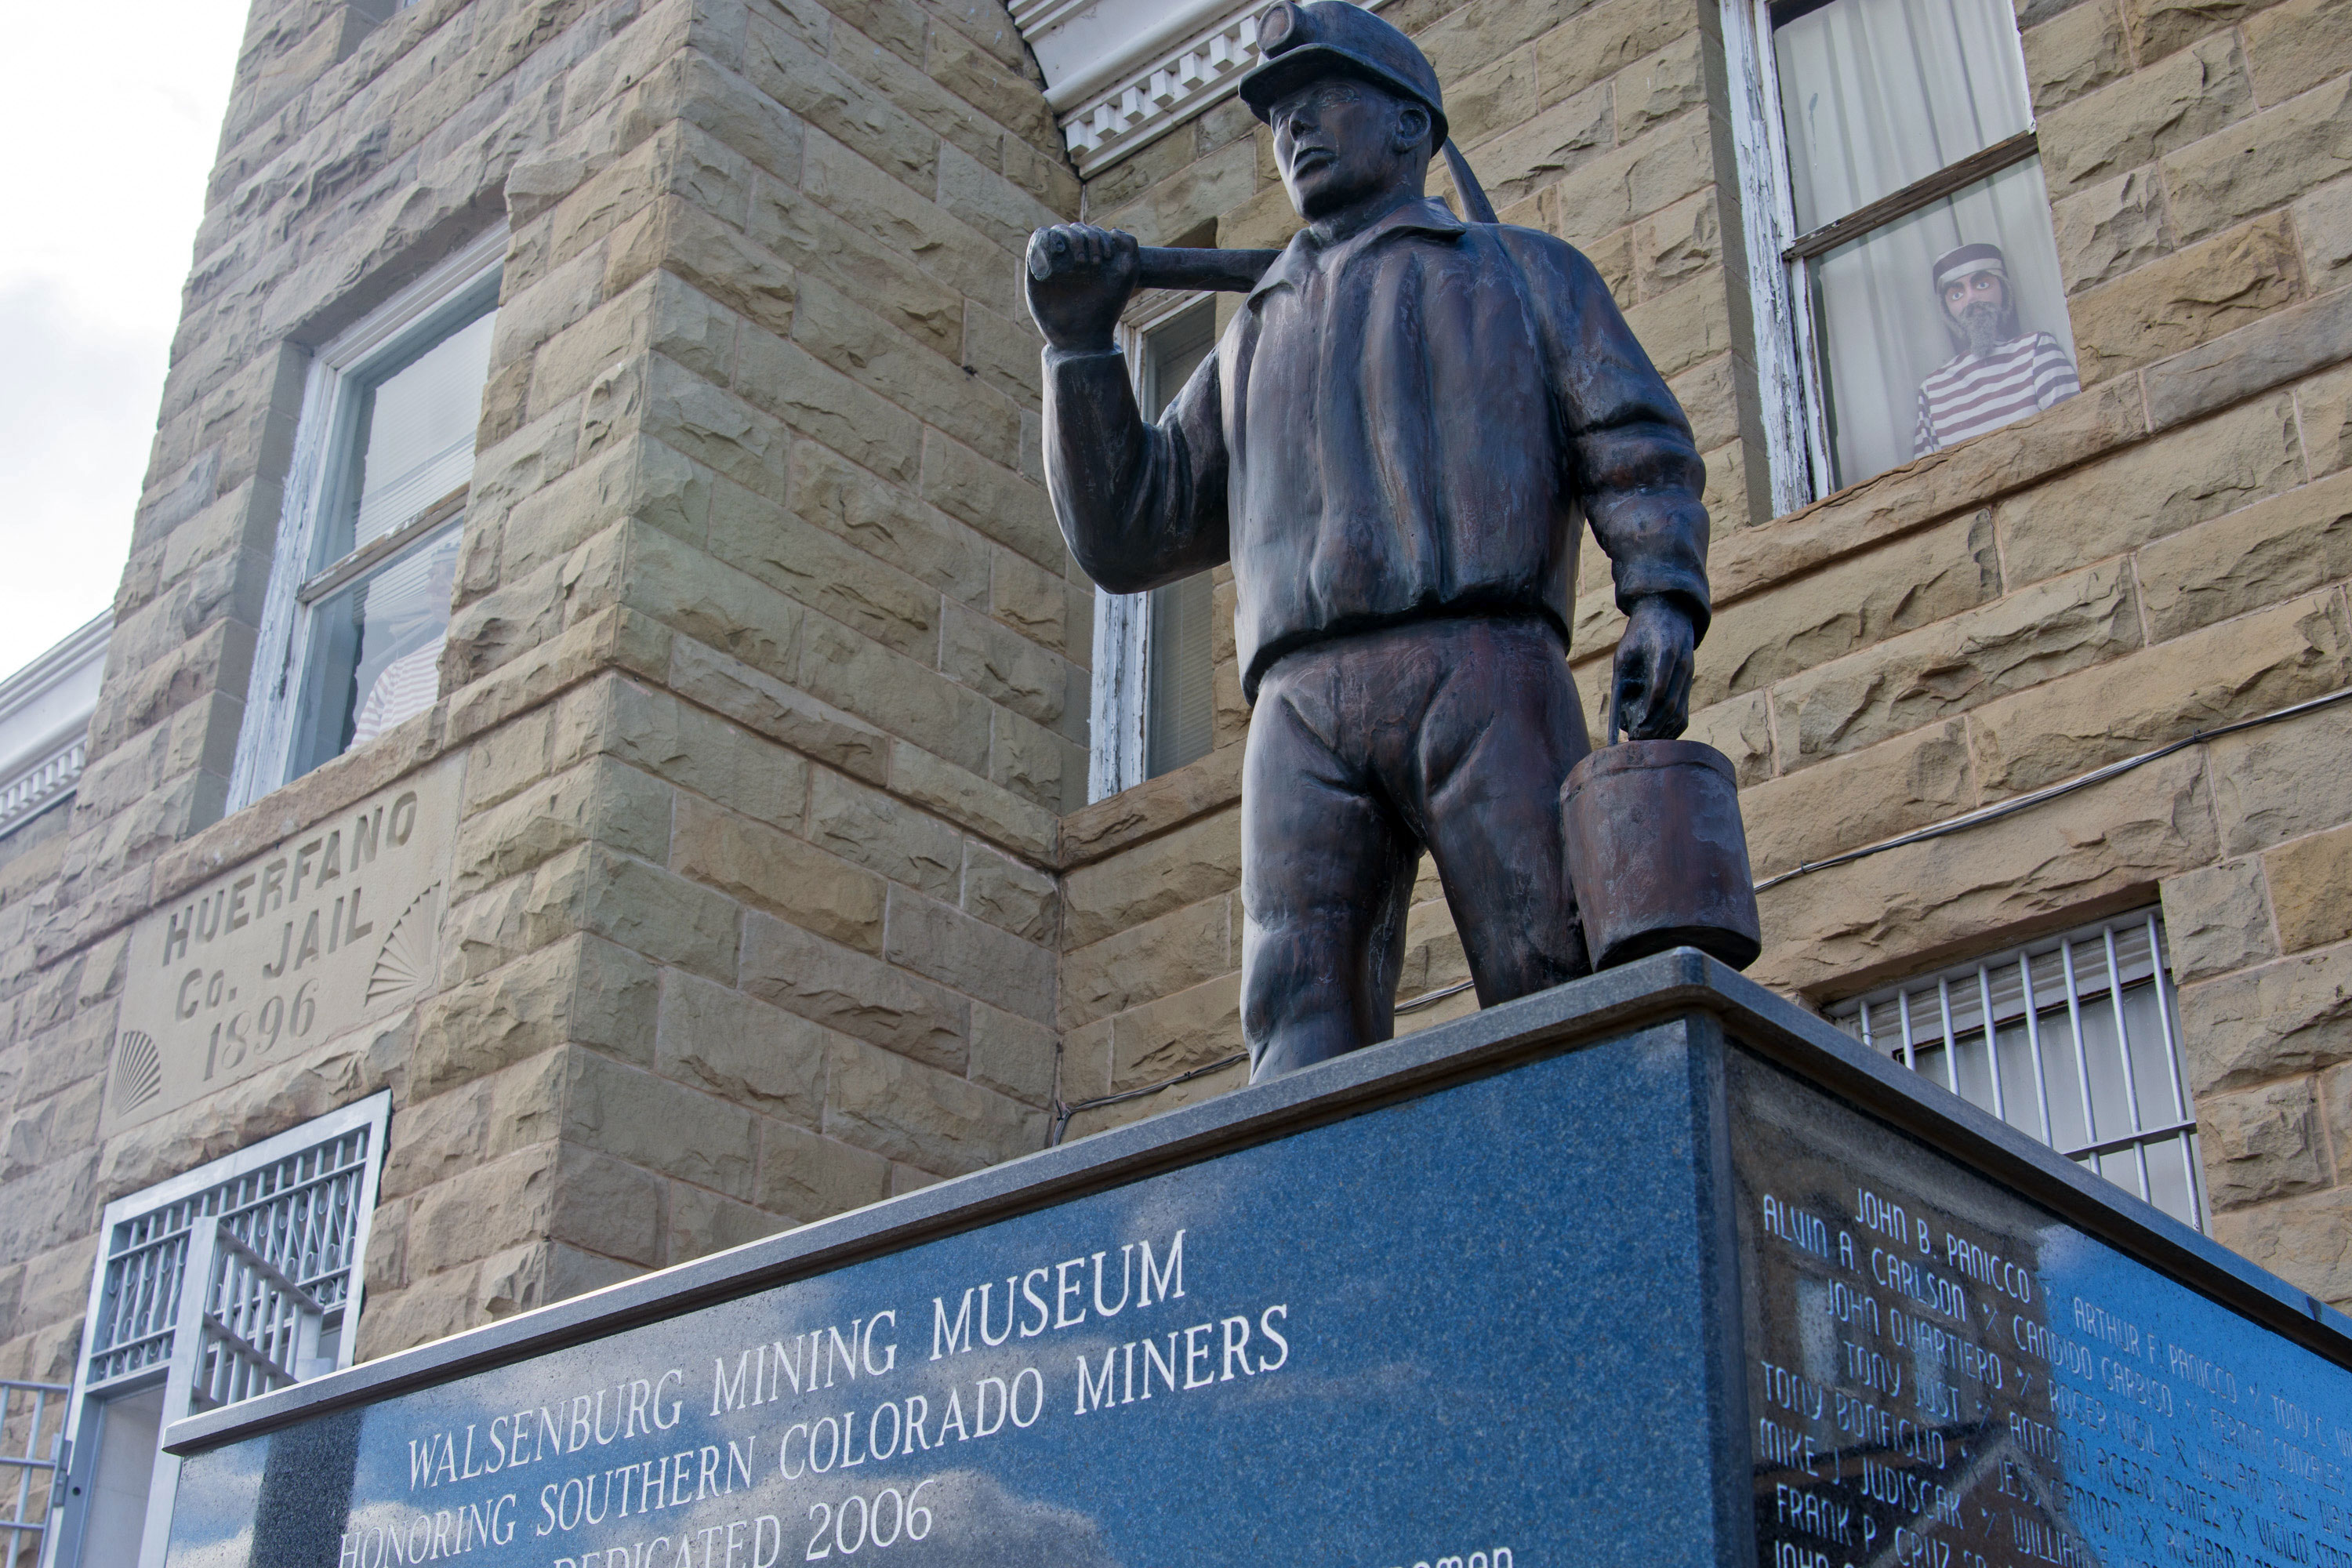 Photo: Walsenburg Art Or Coal 8 | Walsenburg Mining Museum - CJones